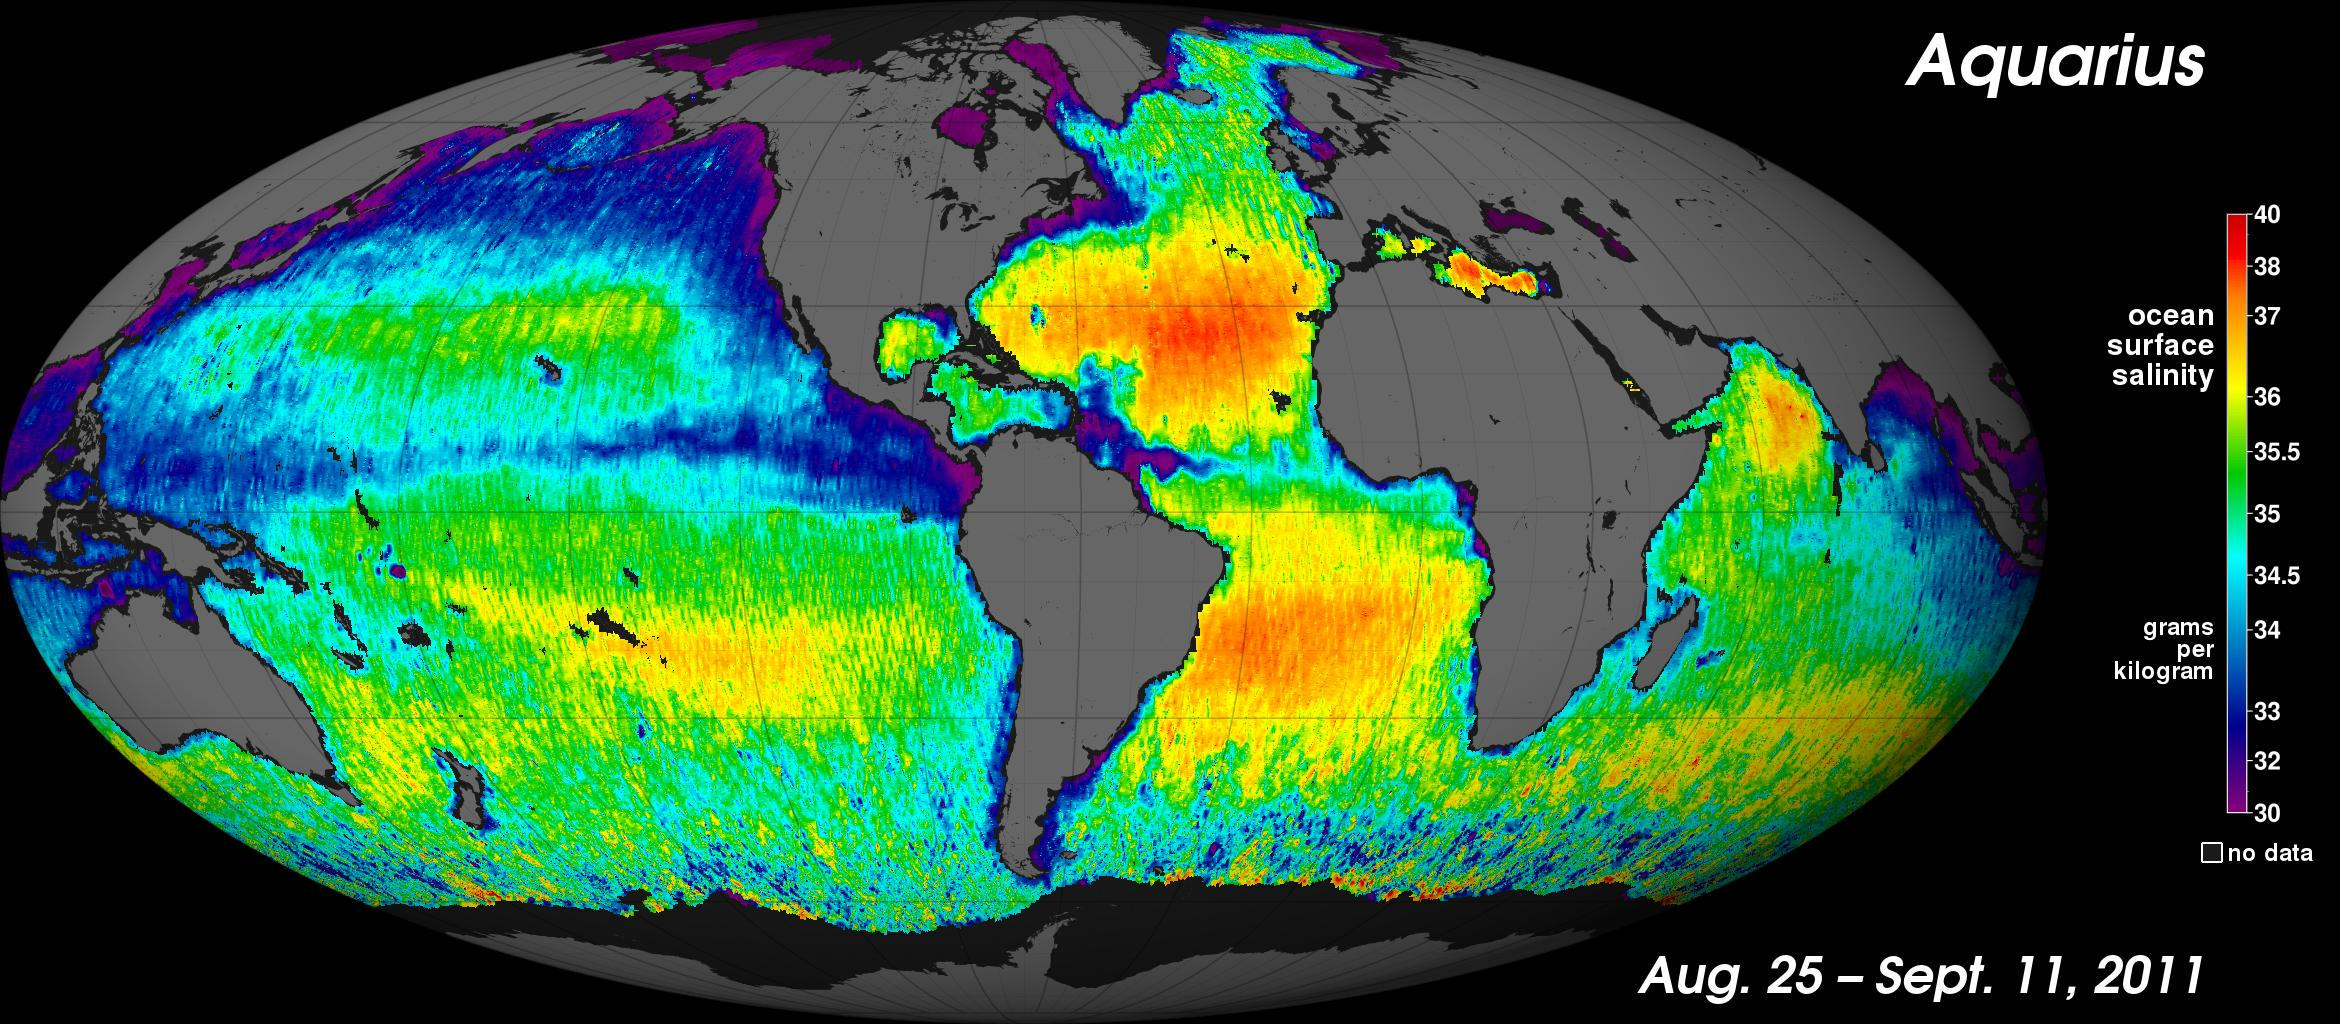 NASA's new Aquarius instrument has produced its first global map of the salinity, or saltiness, of Earth's ocean surface, providing an early glimpse of the mission's anticipated discoveries.